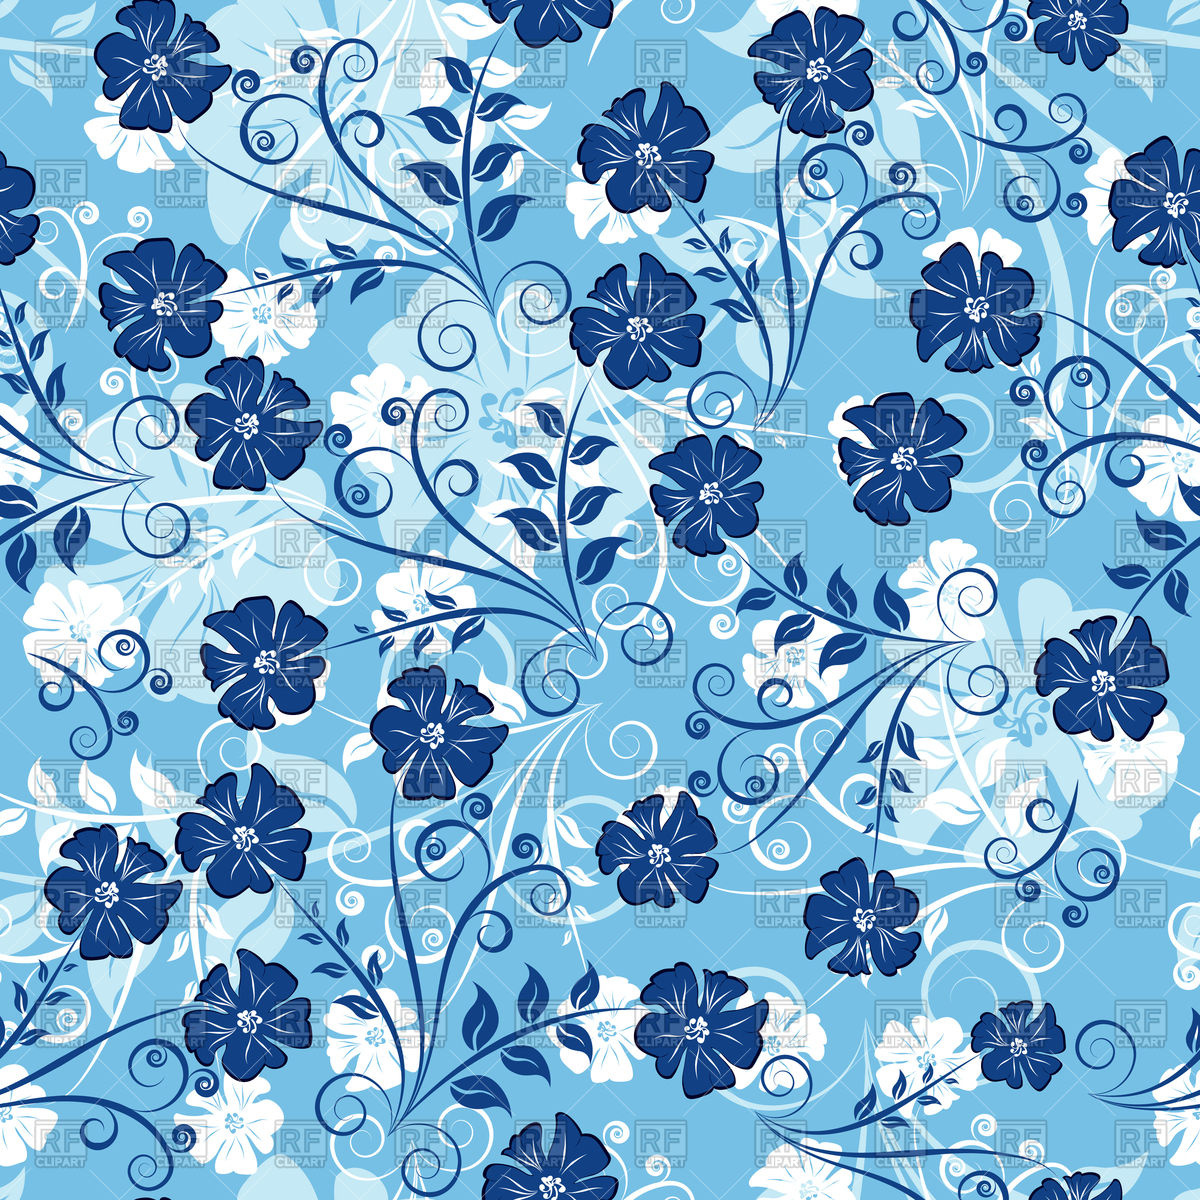 Free Download Blue Floral Background Wwwgalleryhipcom The Hippest